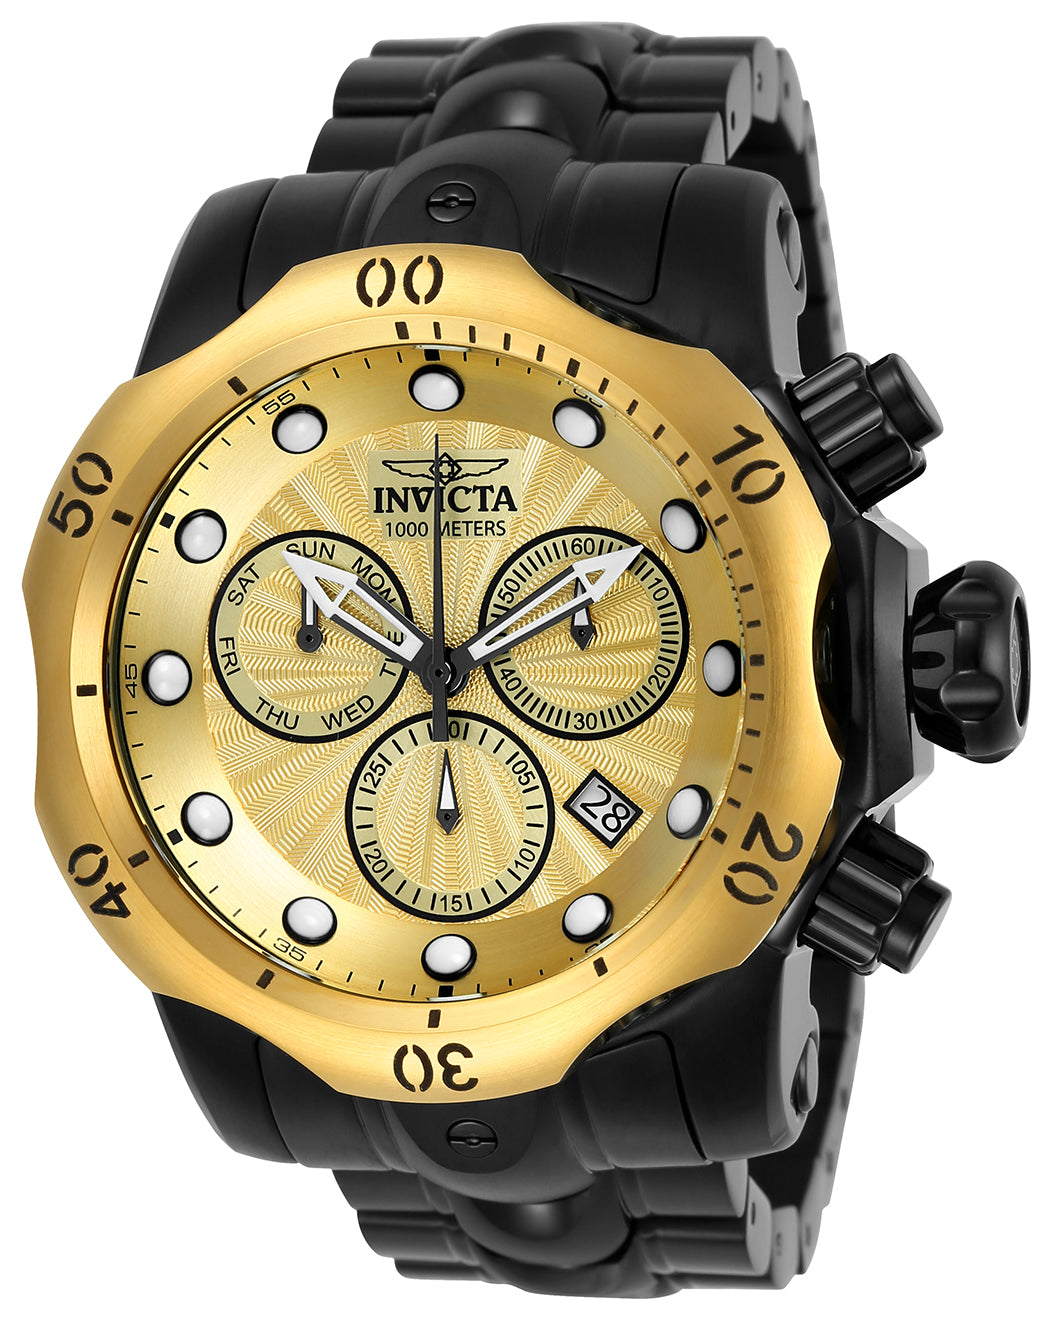 b1b8b7727 Invicta Men's 23896 Venom Quartz Chronograph Gold Dial Watch ...